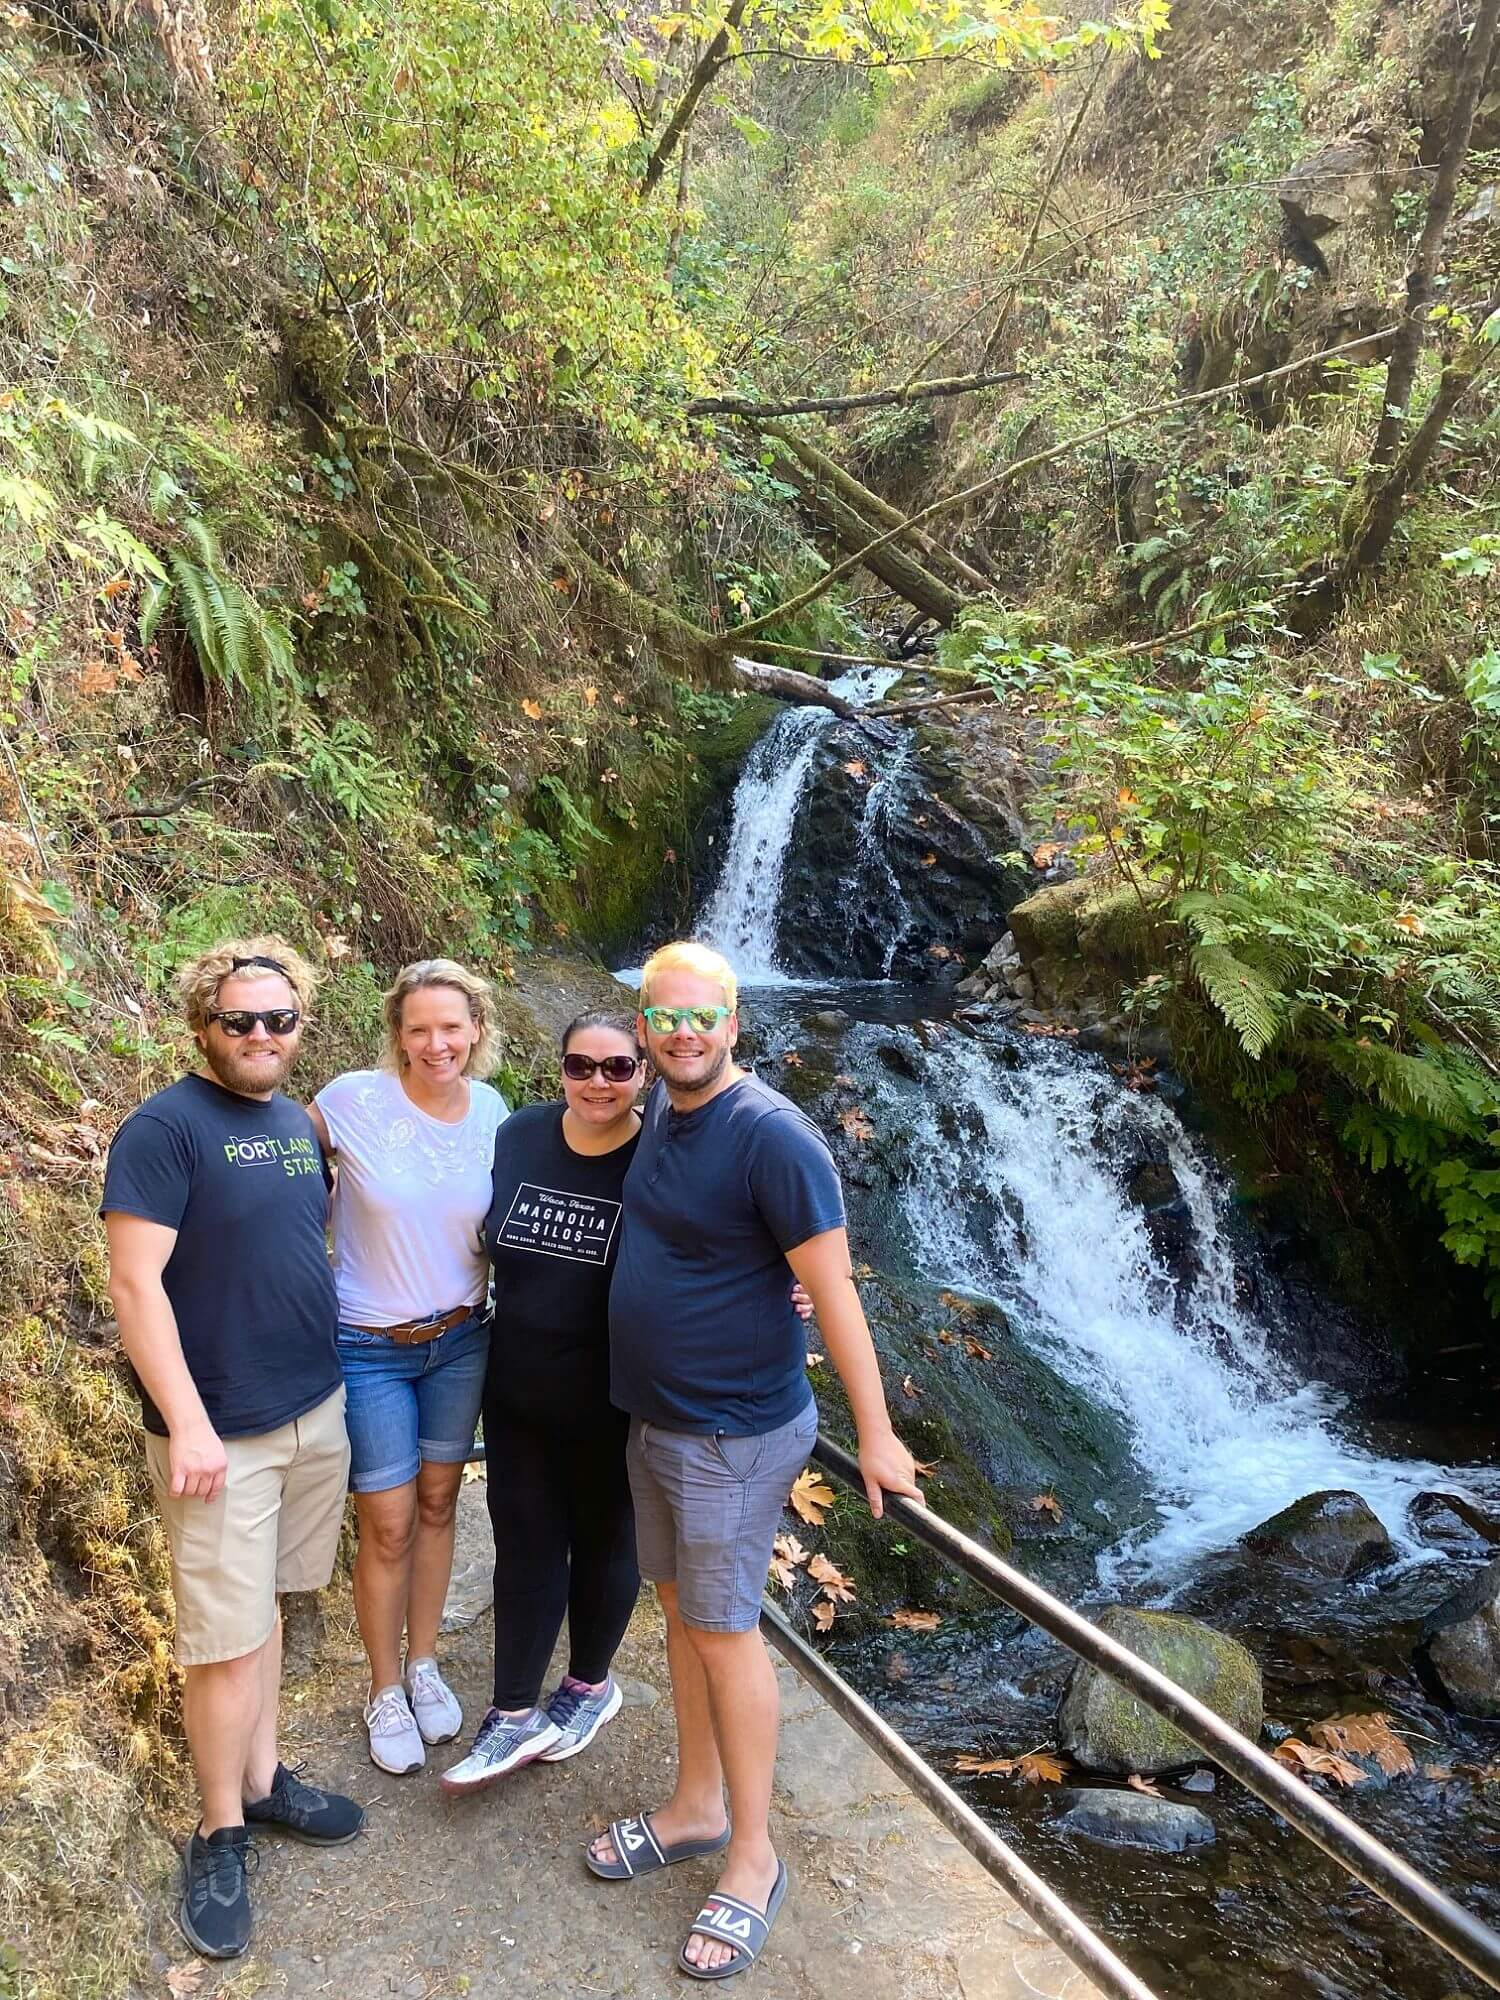 Four people in front of a waterfall